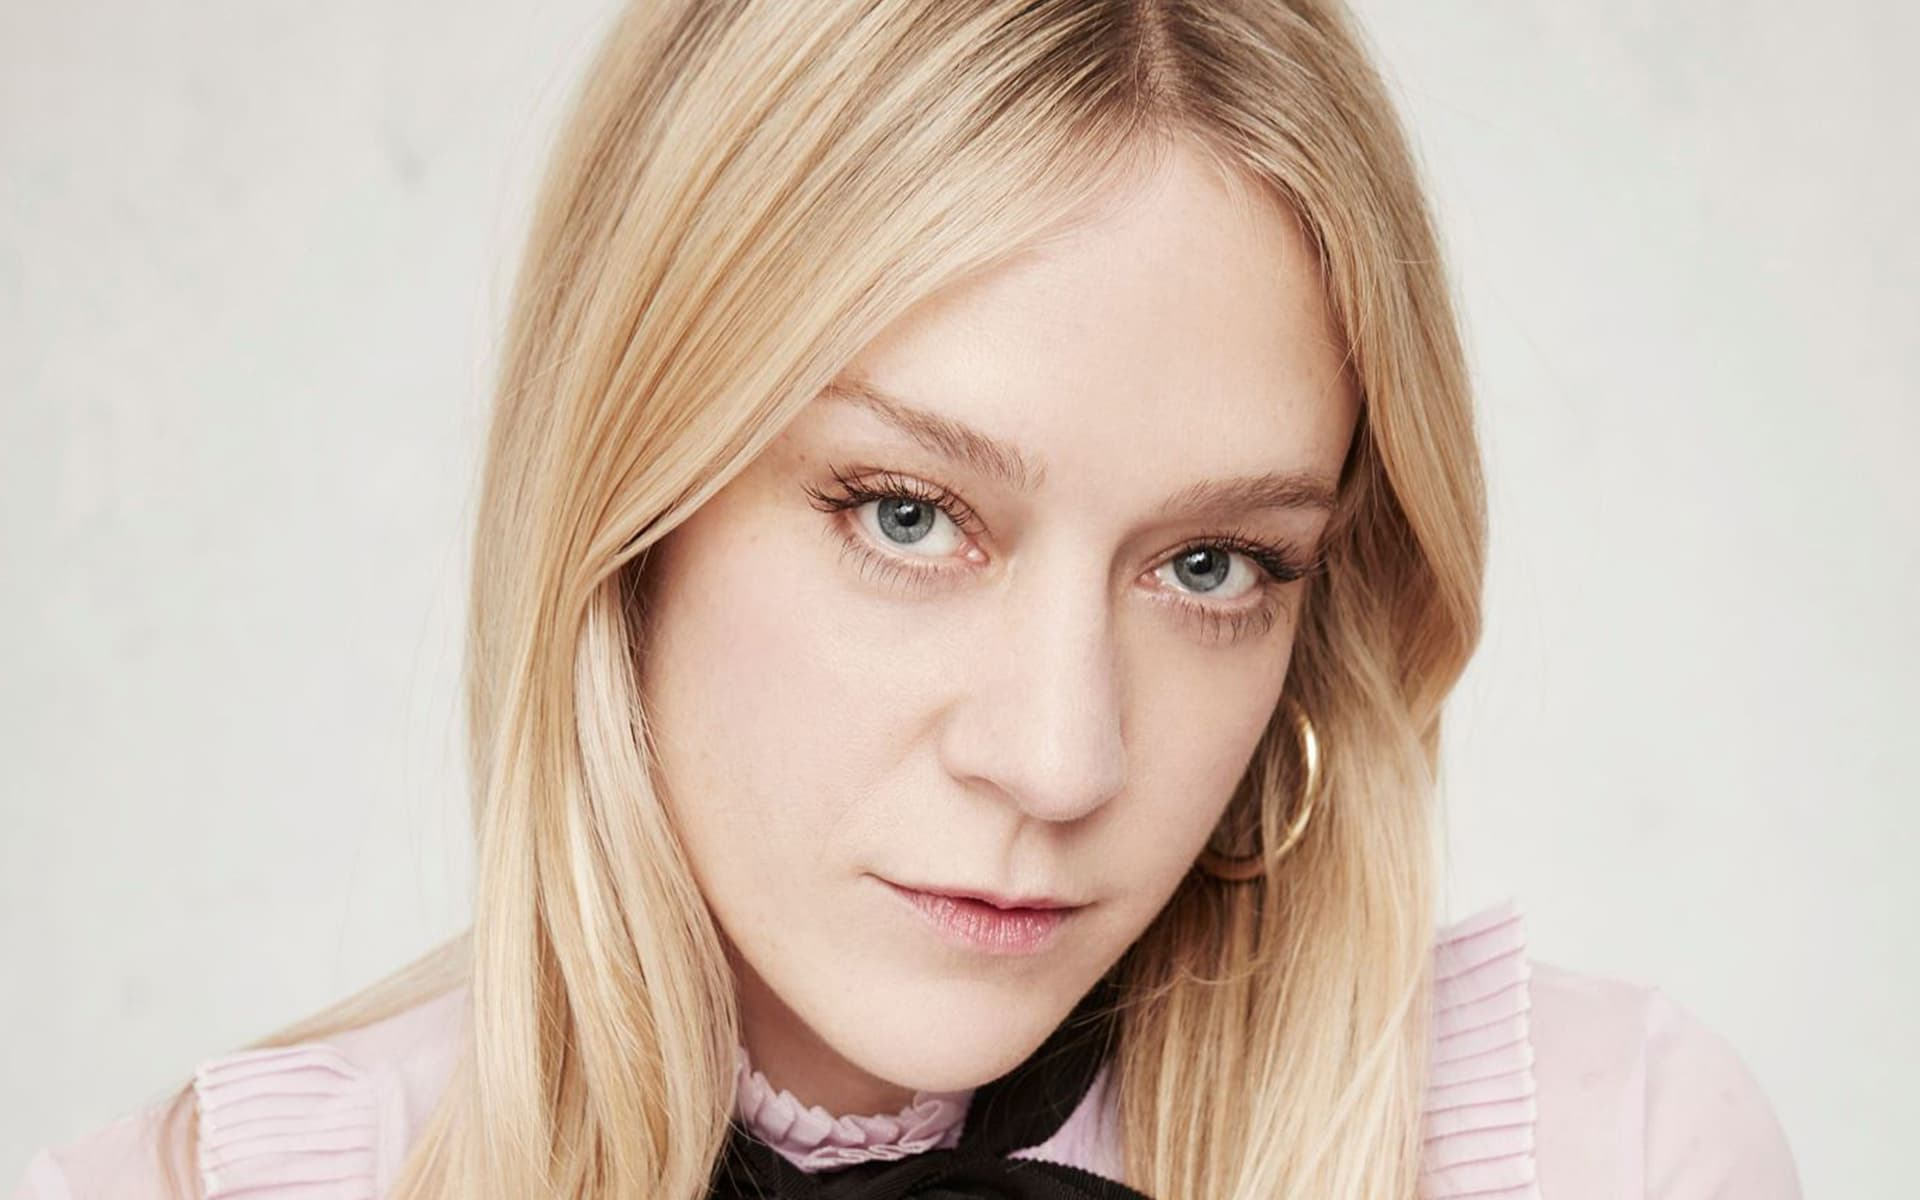 Chloe Sevigny 1920 wallpaper